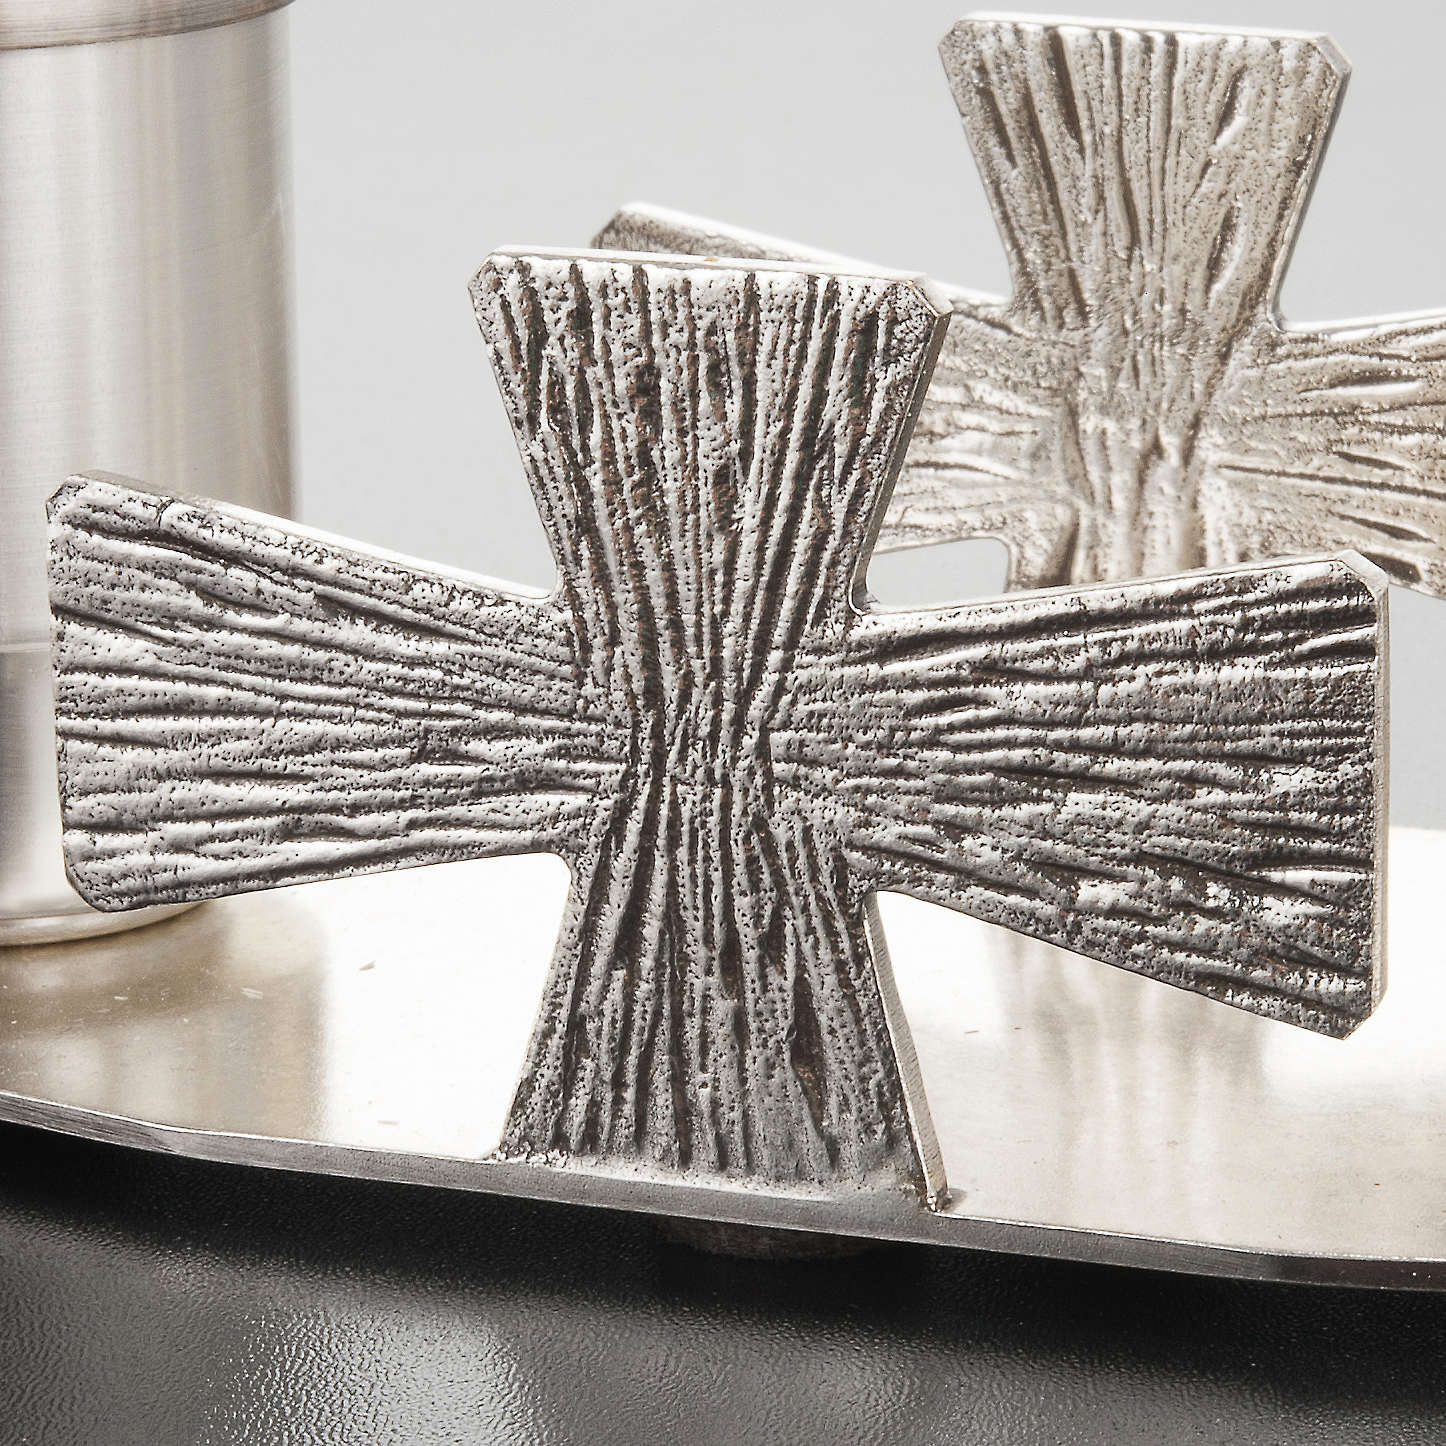 Baptism set with crosses 3